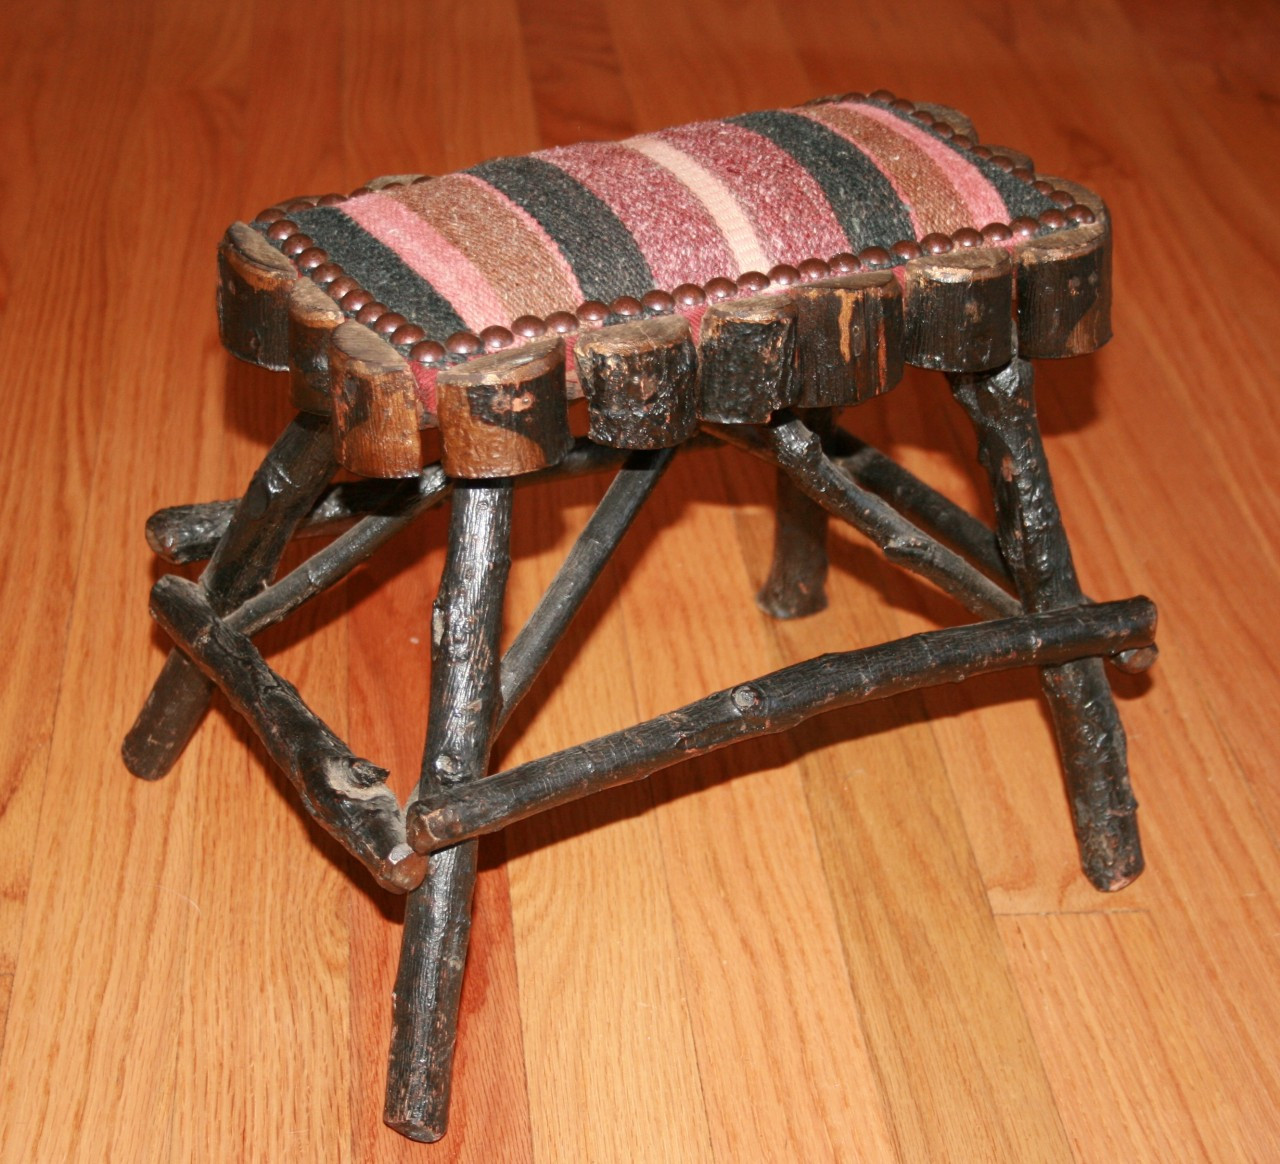 Wondrous Beautifully Upholstered Adirondack Twig Foot Stool Andrewgaddart Wooden Chair Designs For Living Room Andrewgaddartcom